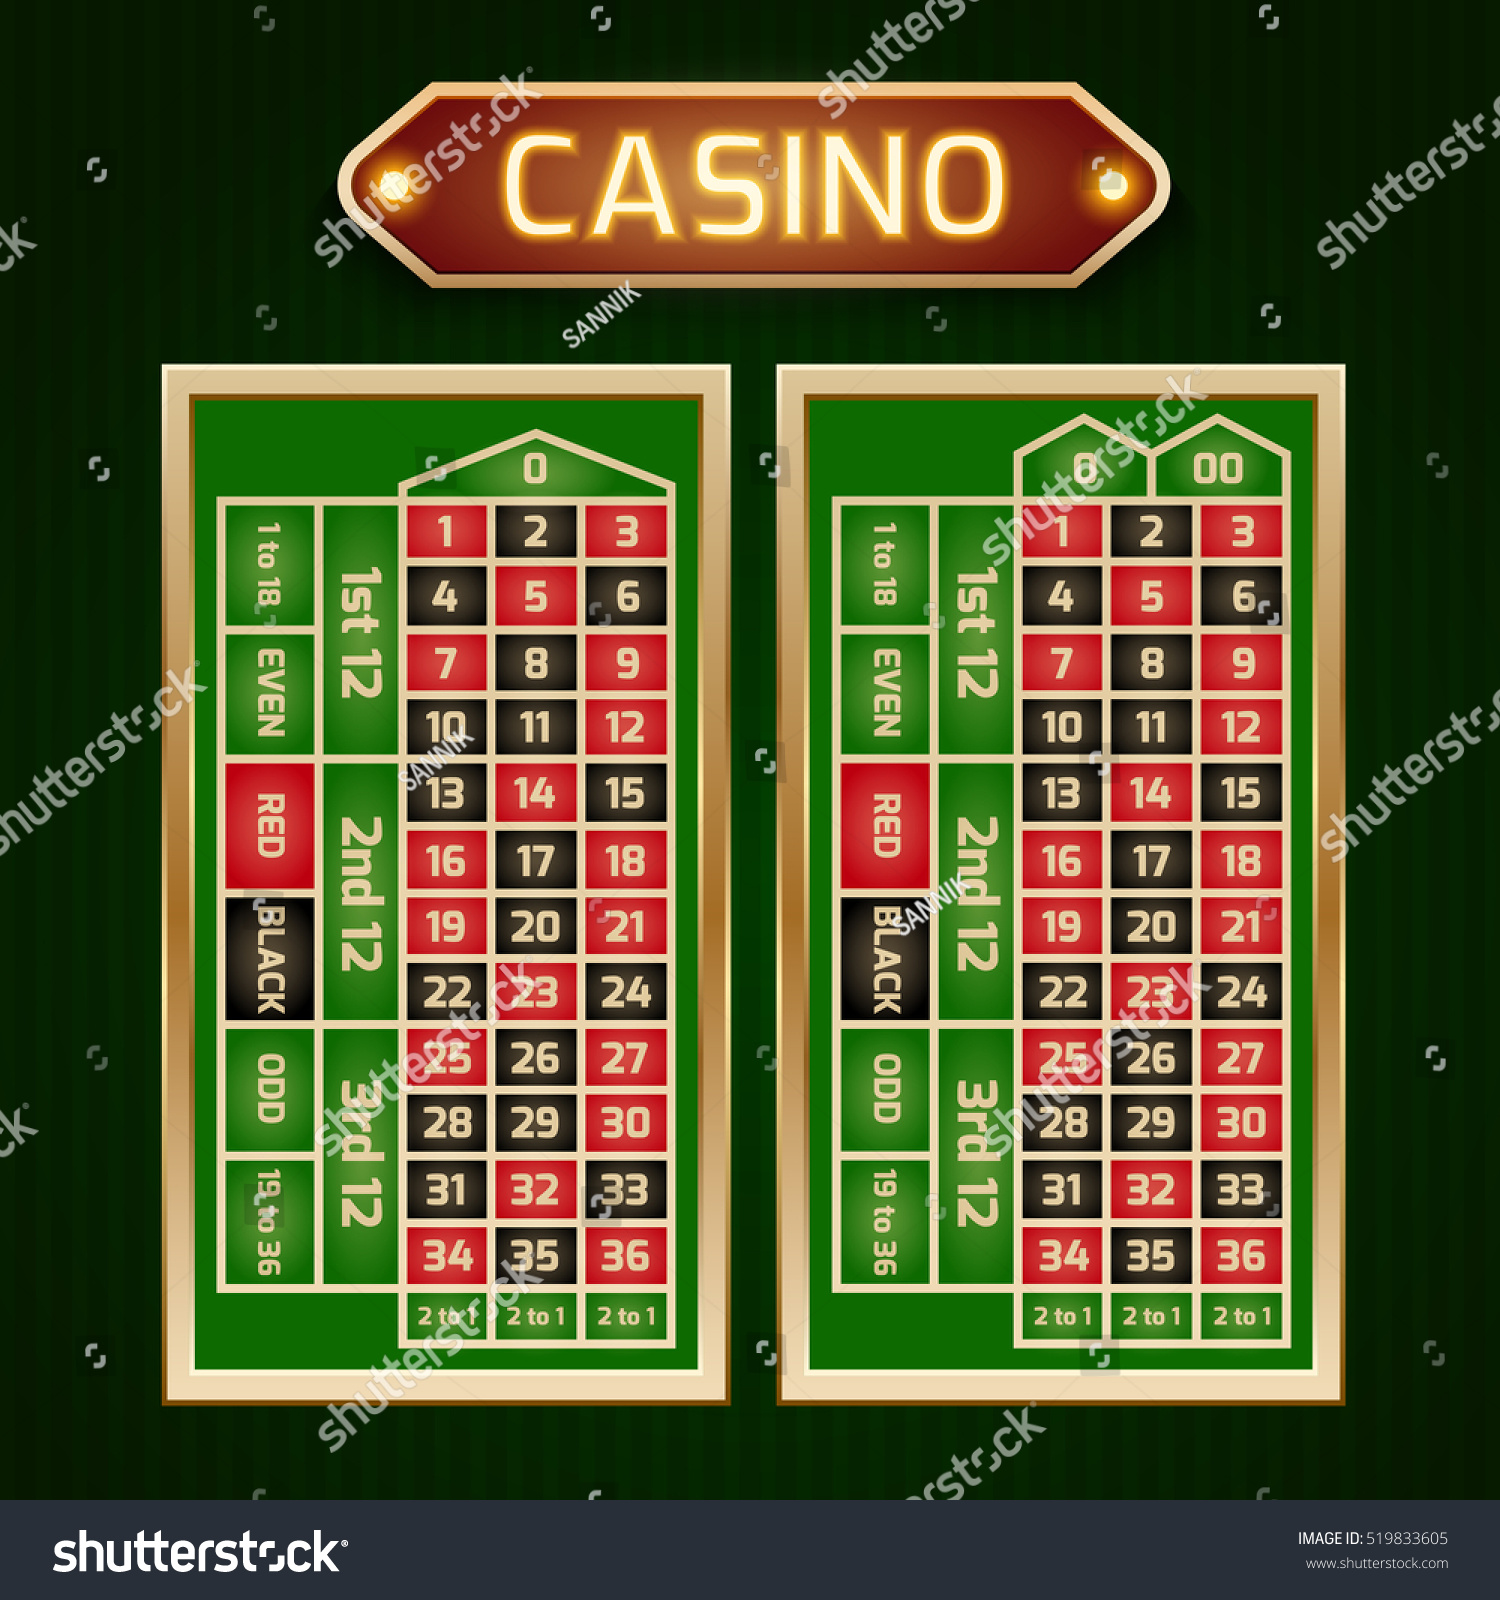 Traditional european roulette table vector illustration stock vector - The Playing Field For The Game Of Roulette In A Casino Vector Illustration